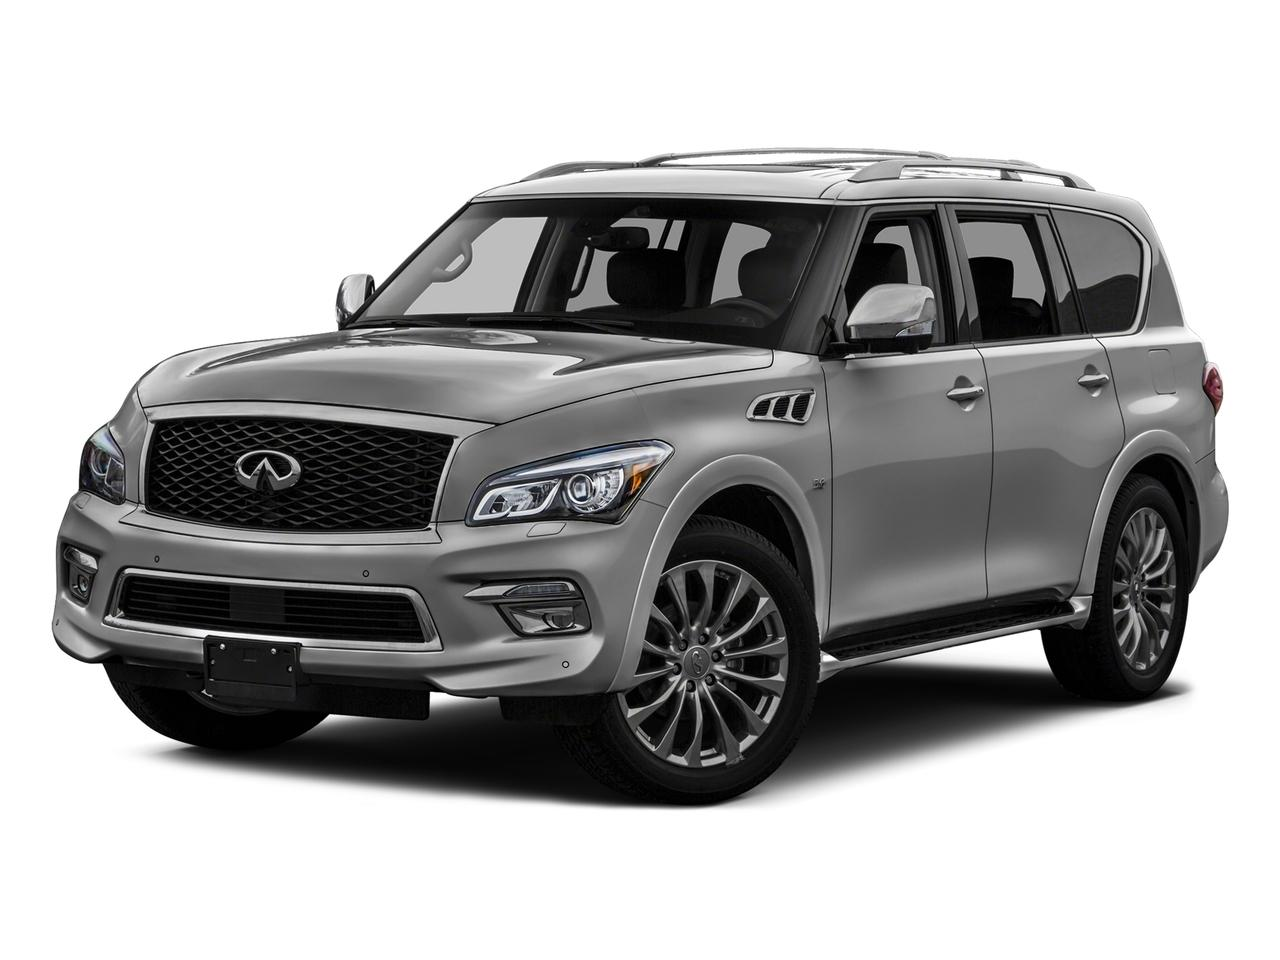 2016 INFINITI QX80 Vehicle Photo in Milford, OH 45150